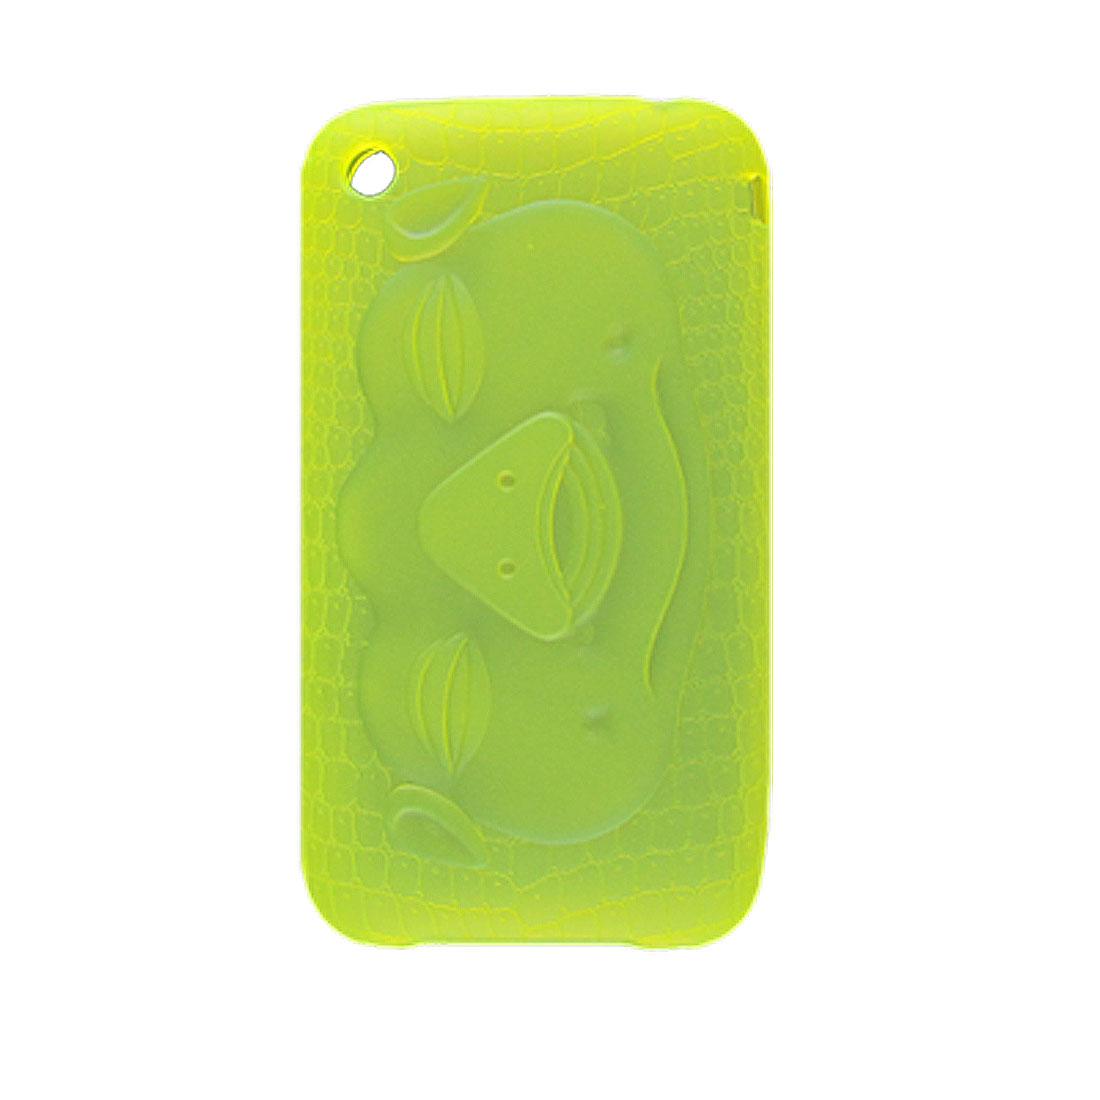 Soft Plastic Lime Color Pig Head Back Case for iPhone 3G